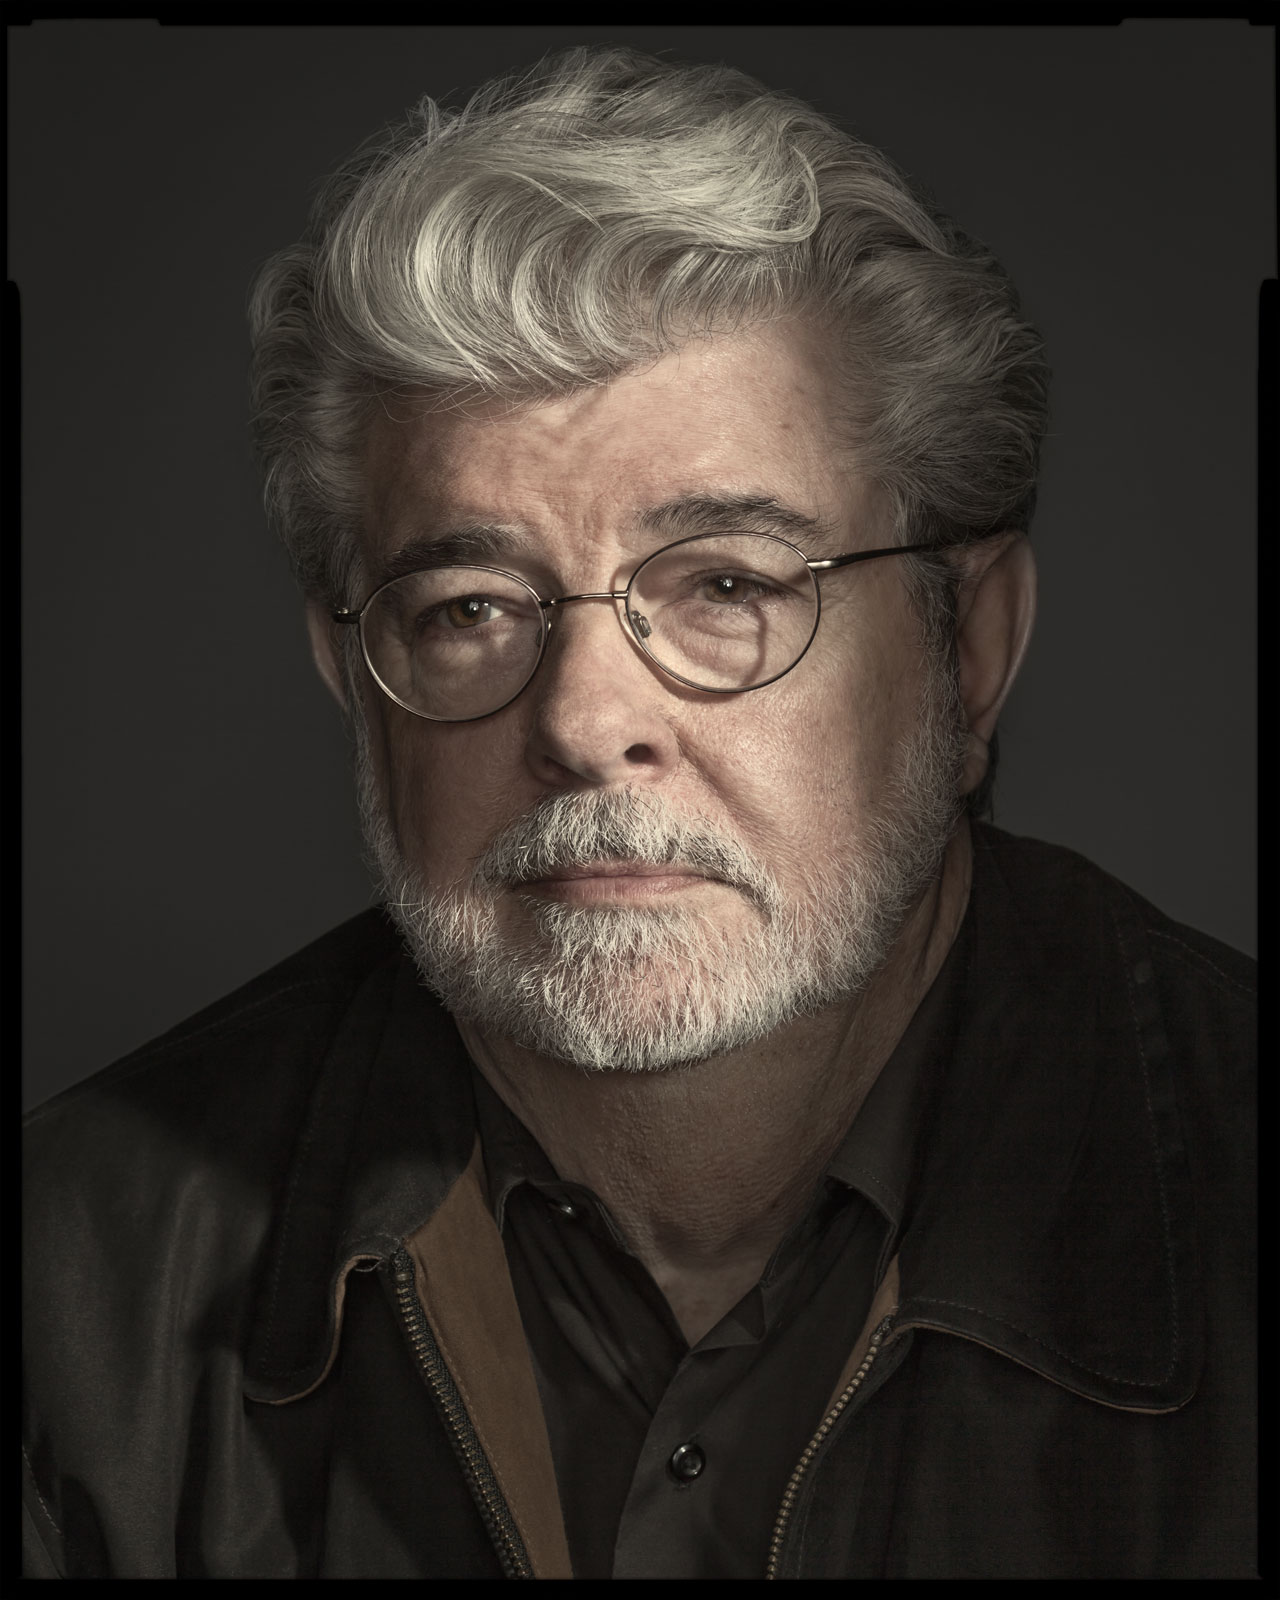 George Lucas - San Francisco, CA - WIRED Magazine